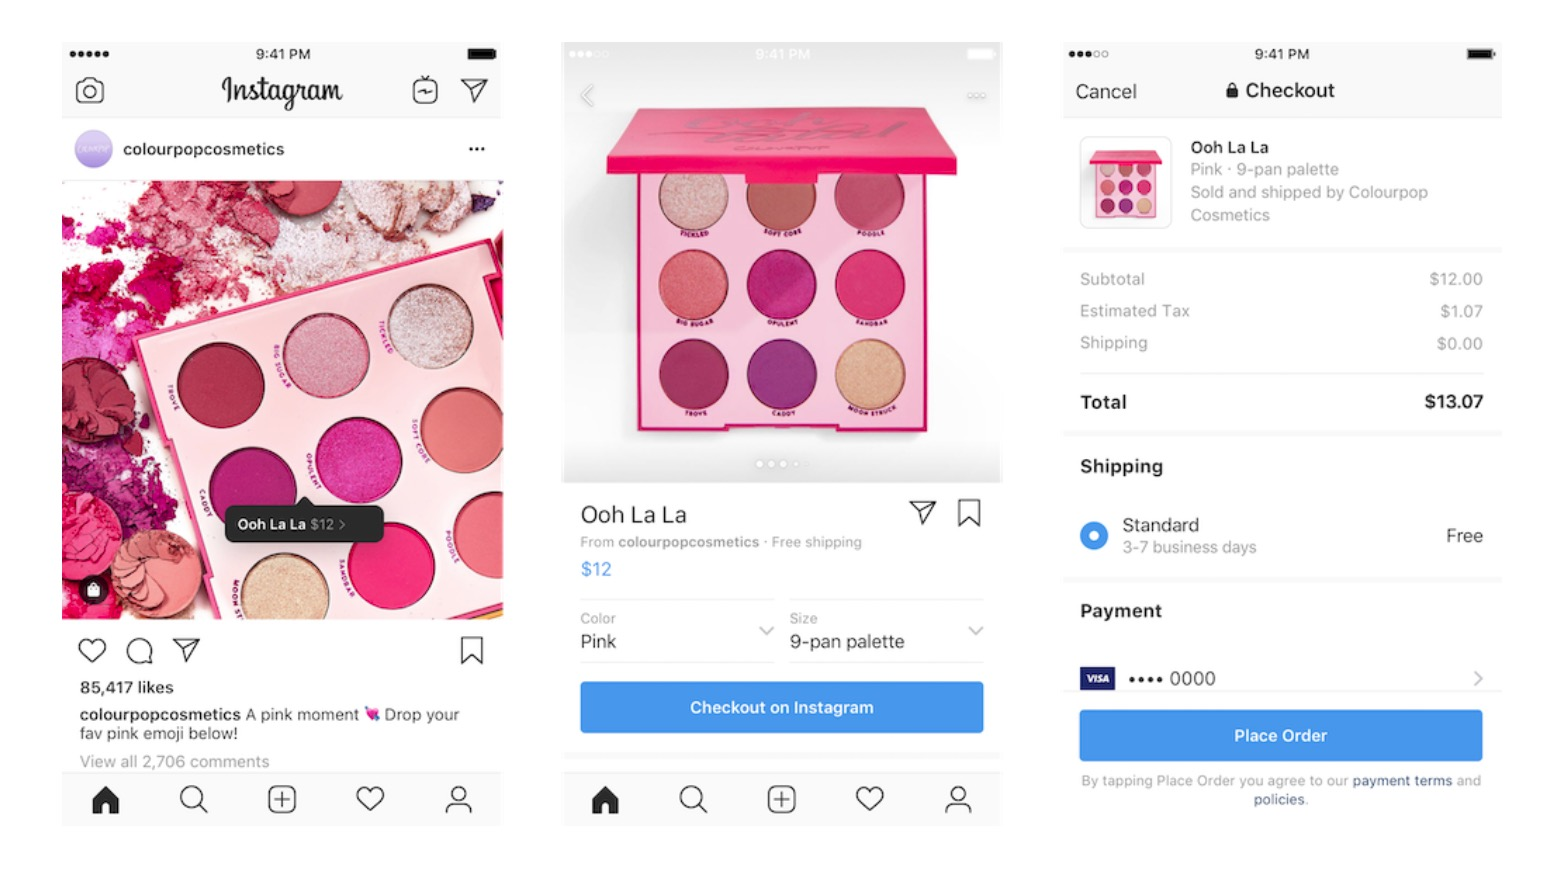 Instagram rolls out Checkout payment feature, data handled